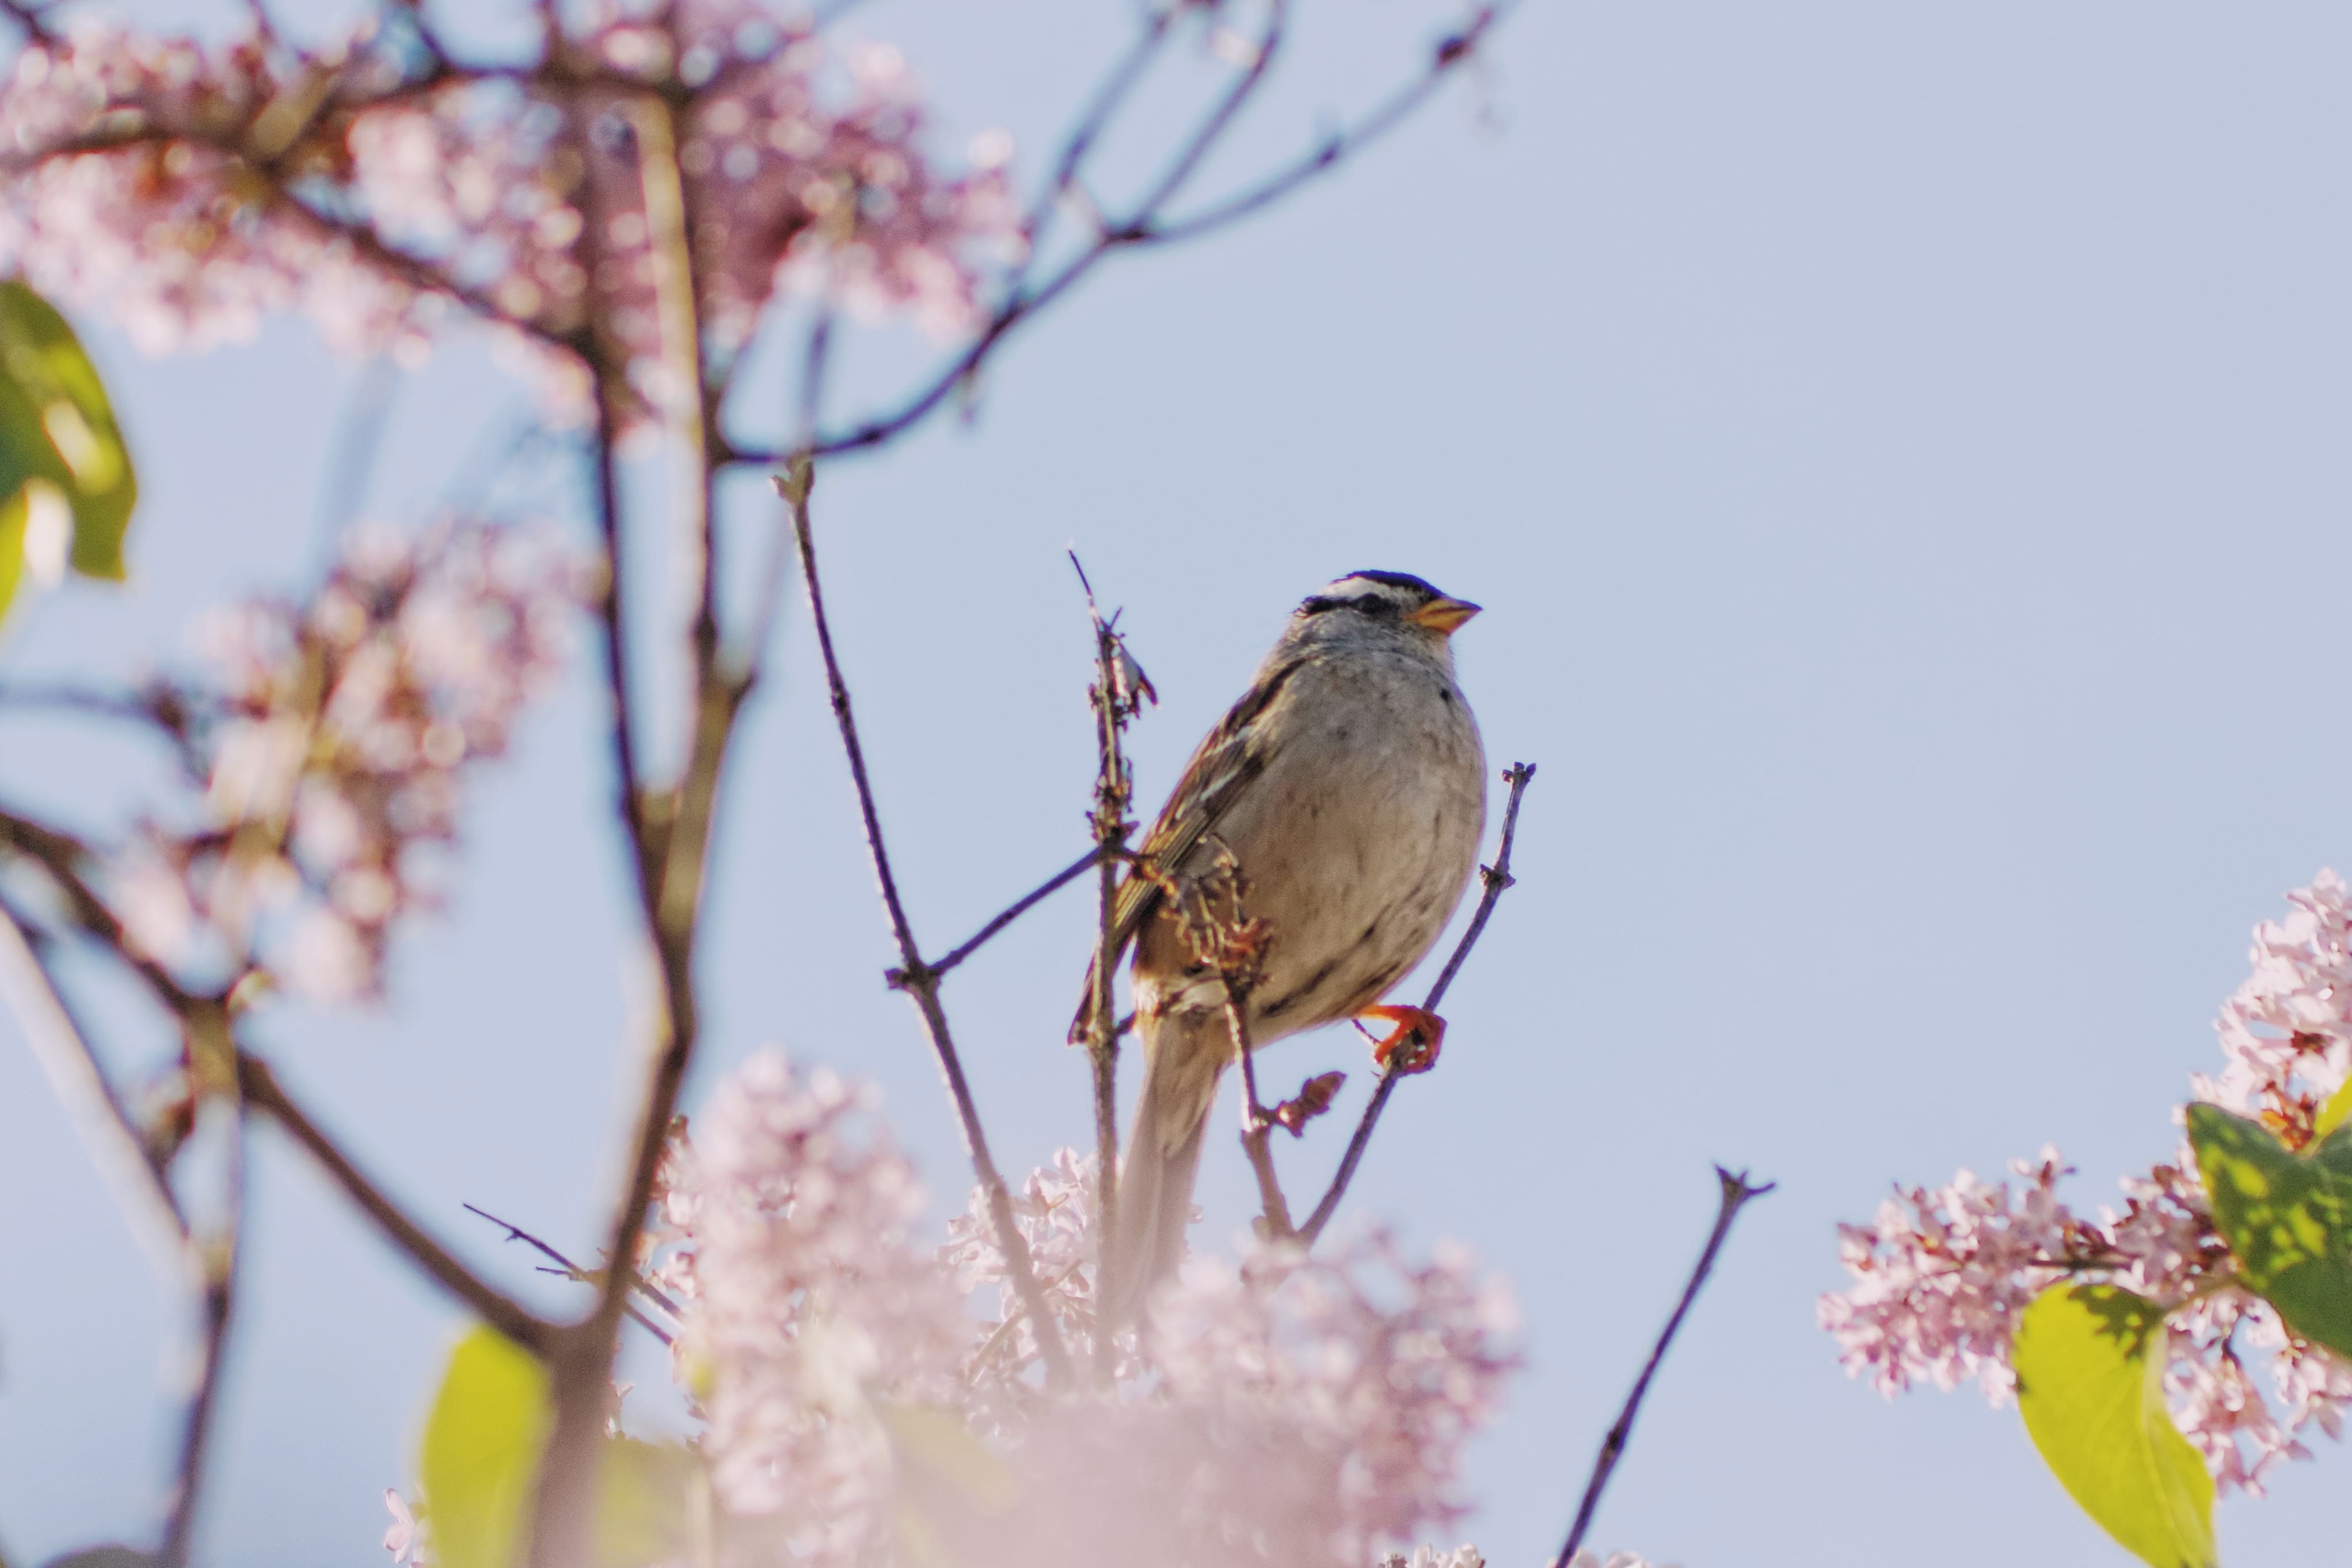 a songbird perched on a branch